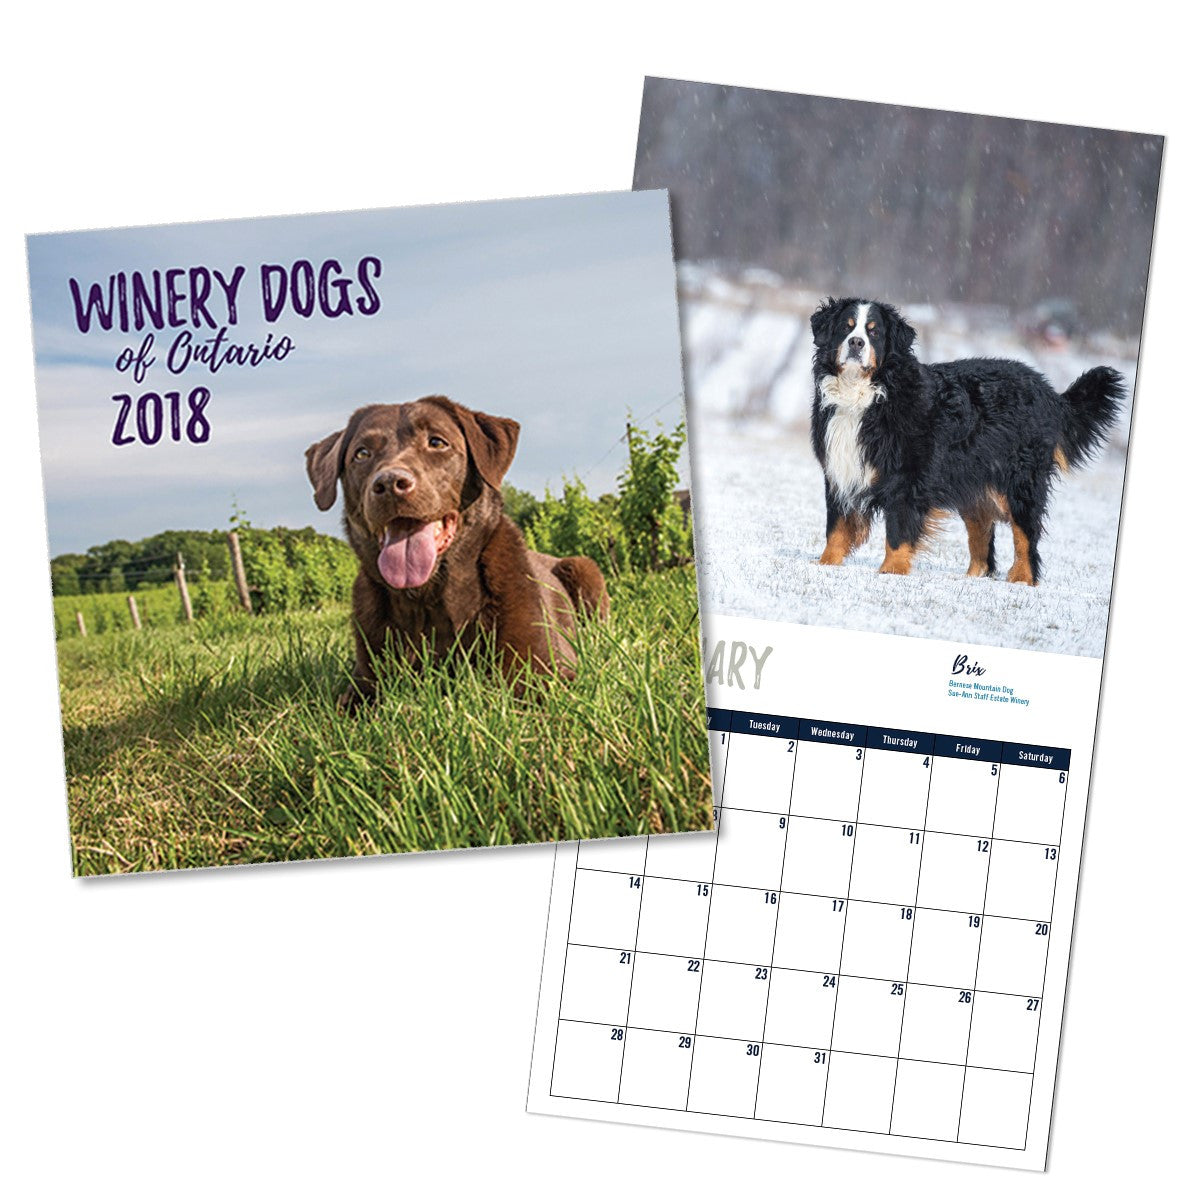 Winery Dogs Ontario 2018 Calendar Blow Out Sale 10 Hst 11 30